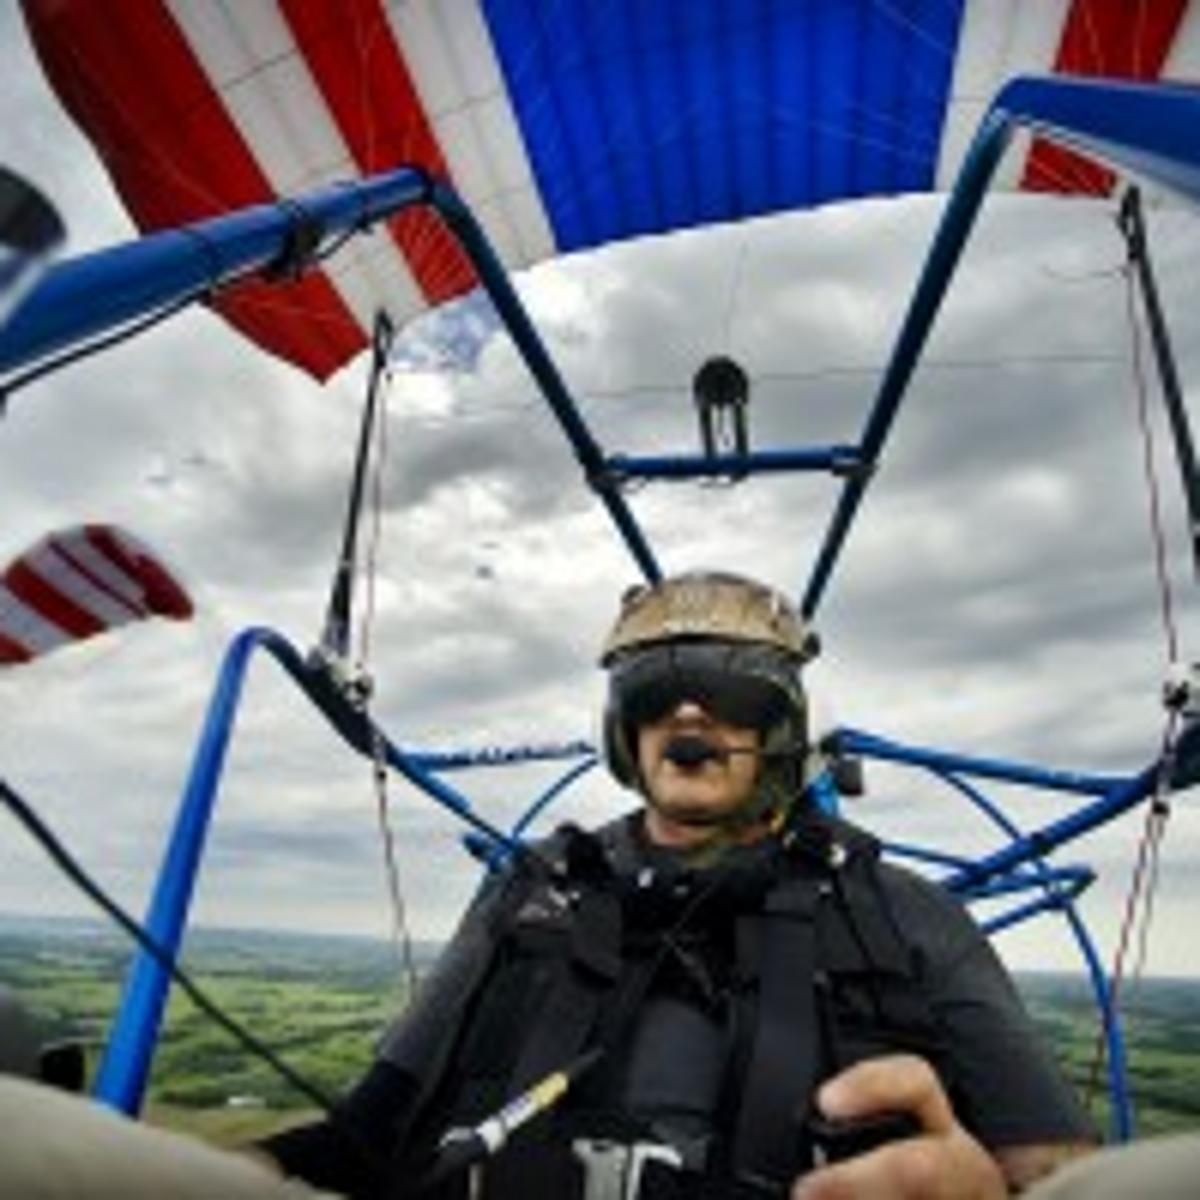 Powered Parachute Pilots Feel The Wind Local